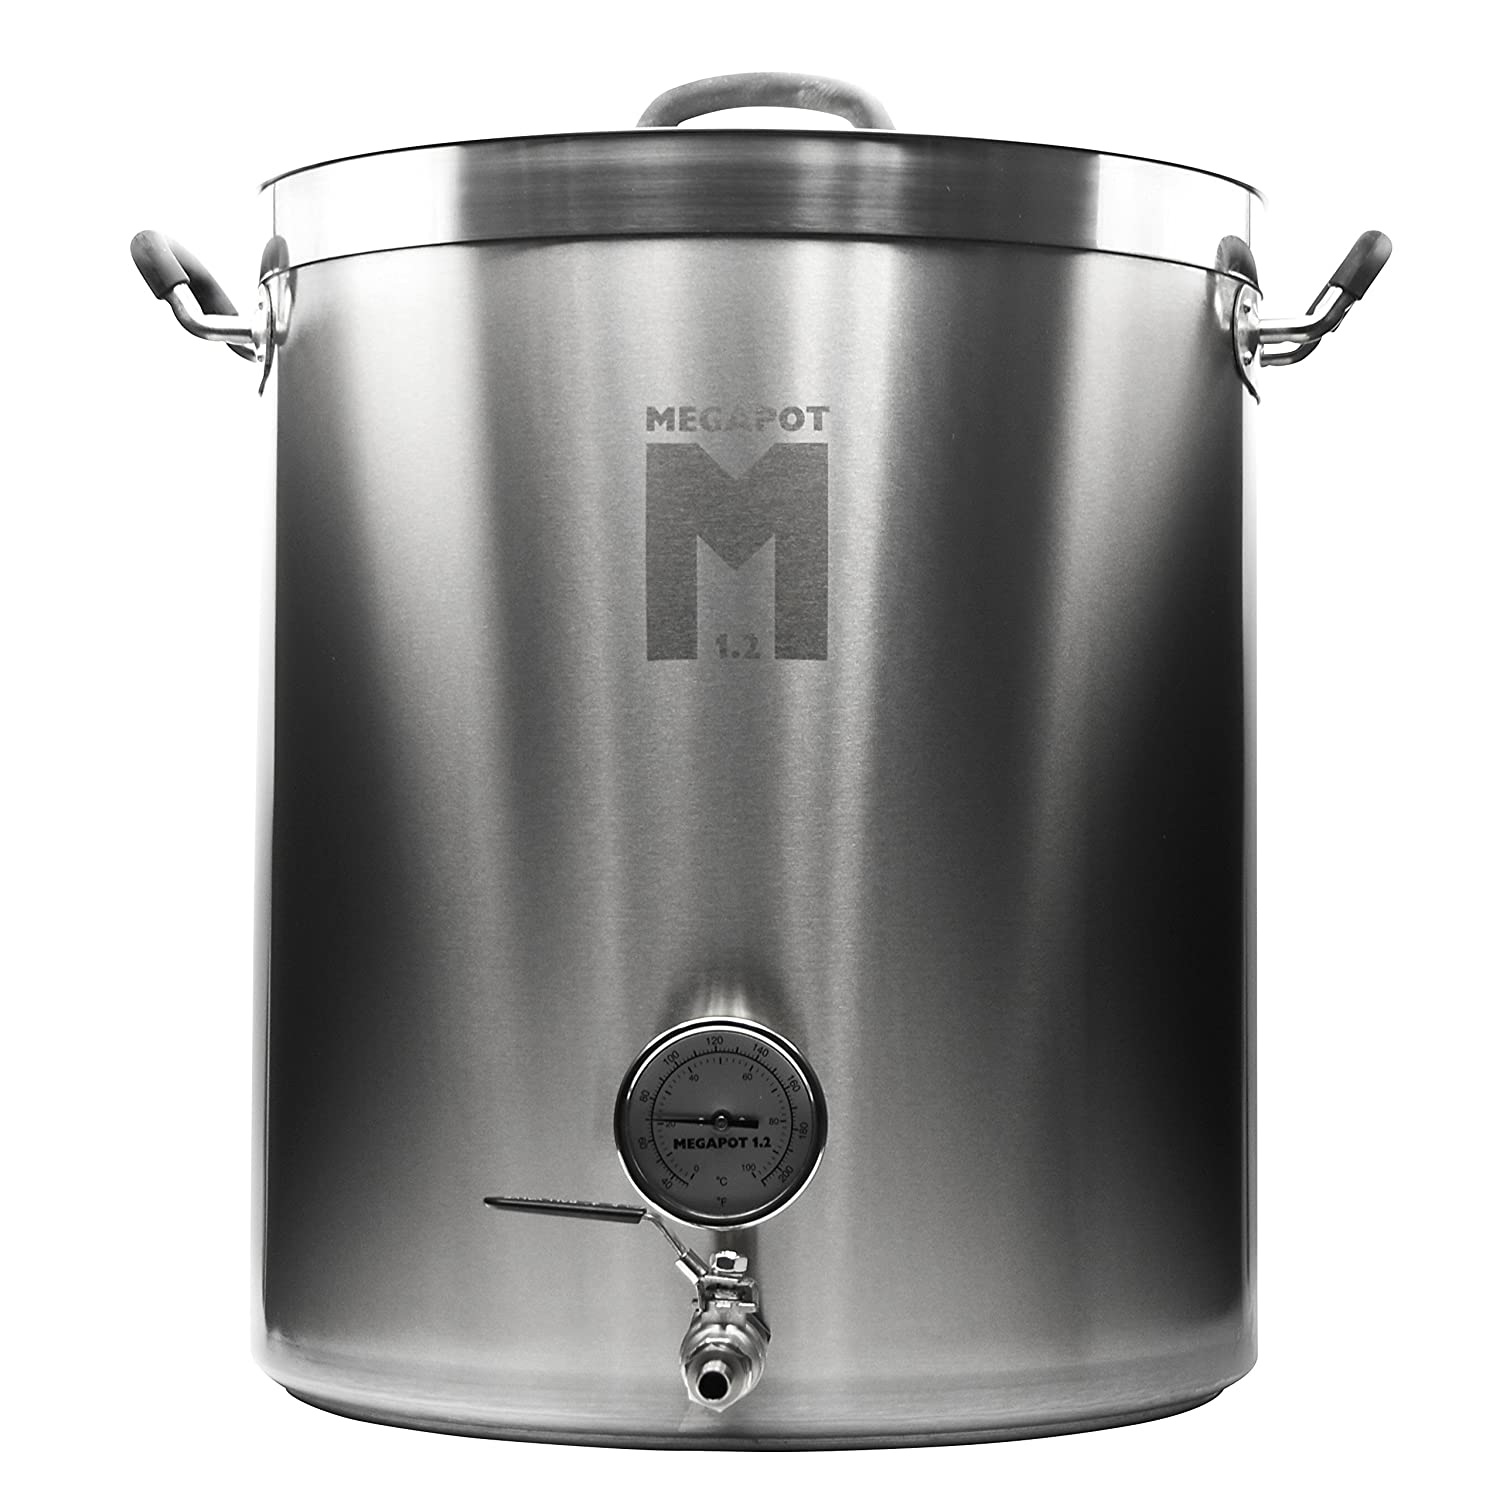 Northern Brewer - Megapot 1.2 Homebrew Stainless Steel Brew Kettle Stock Pot For Beer Brewing (Kettle with a Valve, 8 Gallon/32 Quarts)